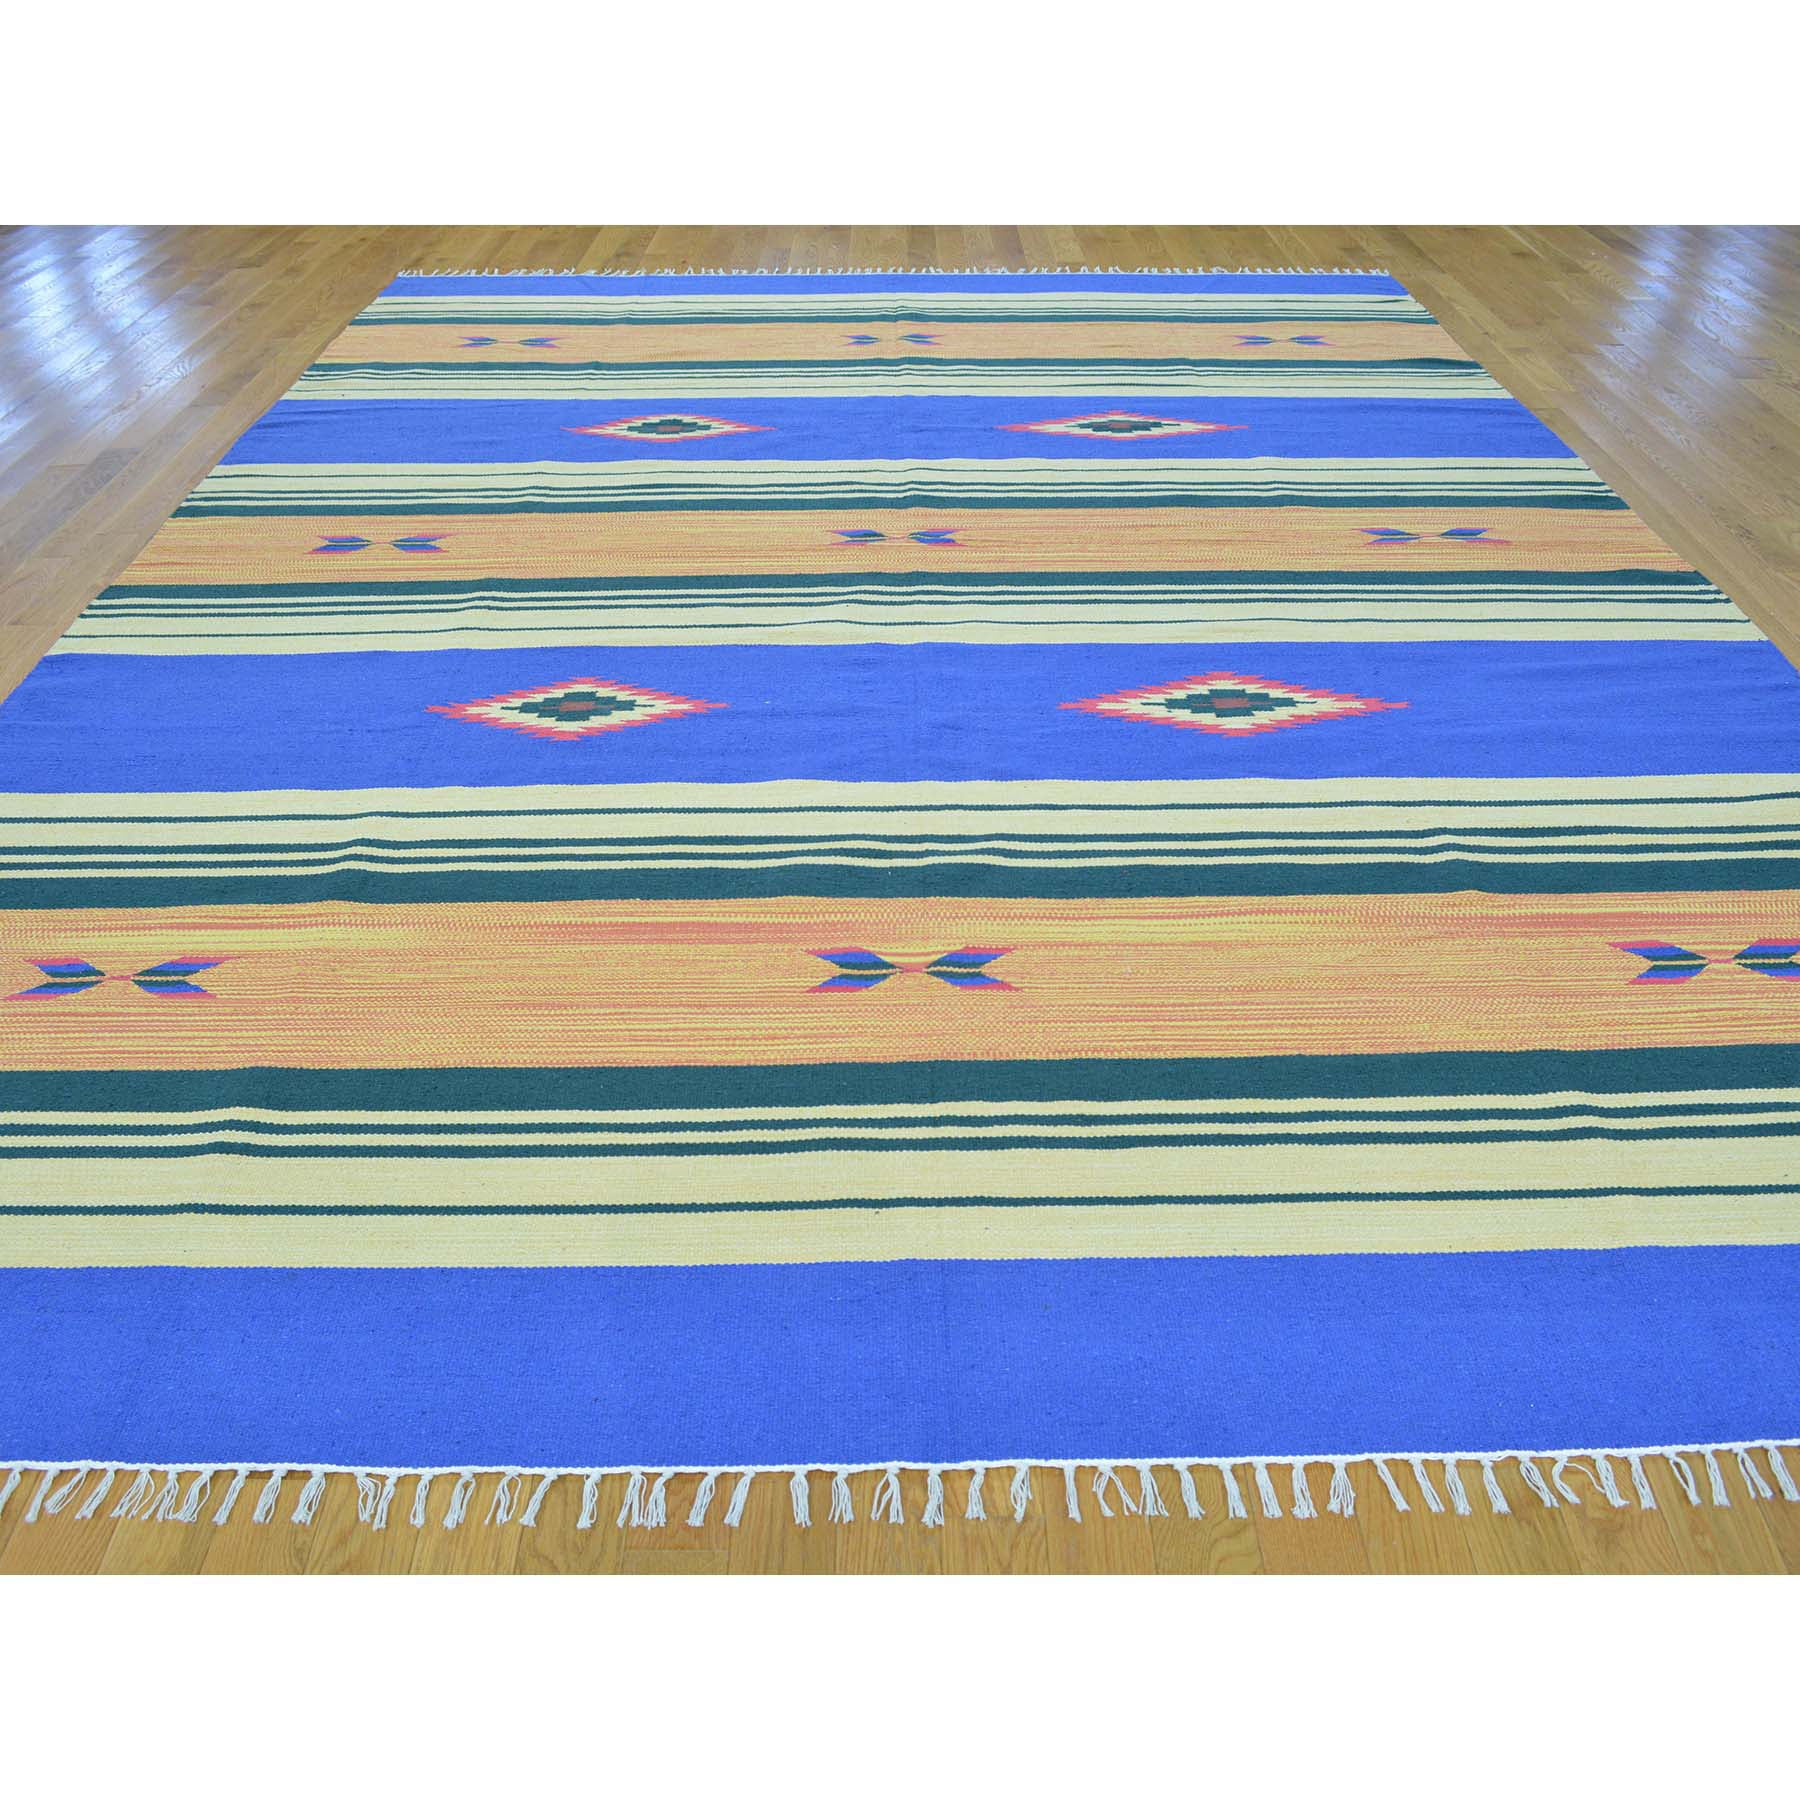 "Handmade Flat Weave Rectangle Rug > Design# SH26081 > Size: 8'-10"" x 12'-1"" [ONLINE ONLY]"